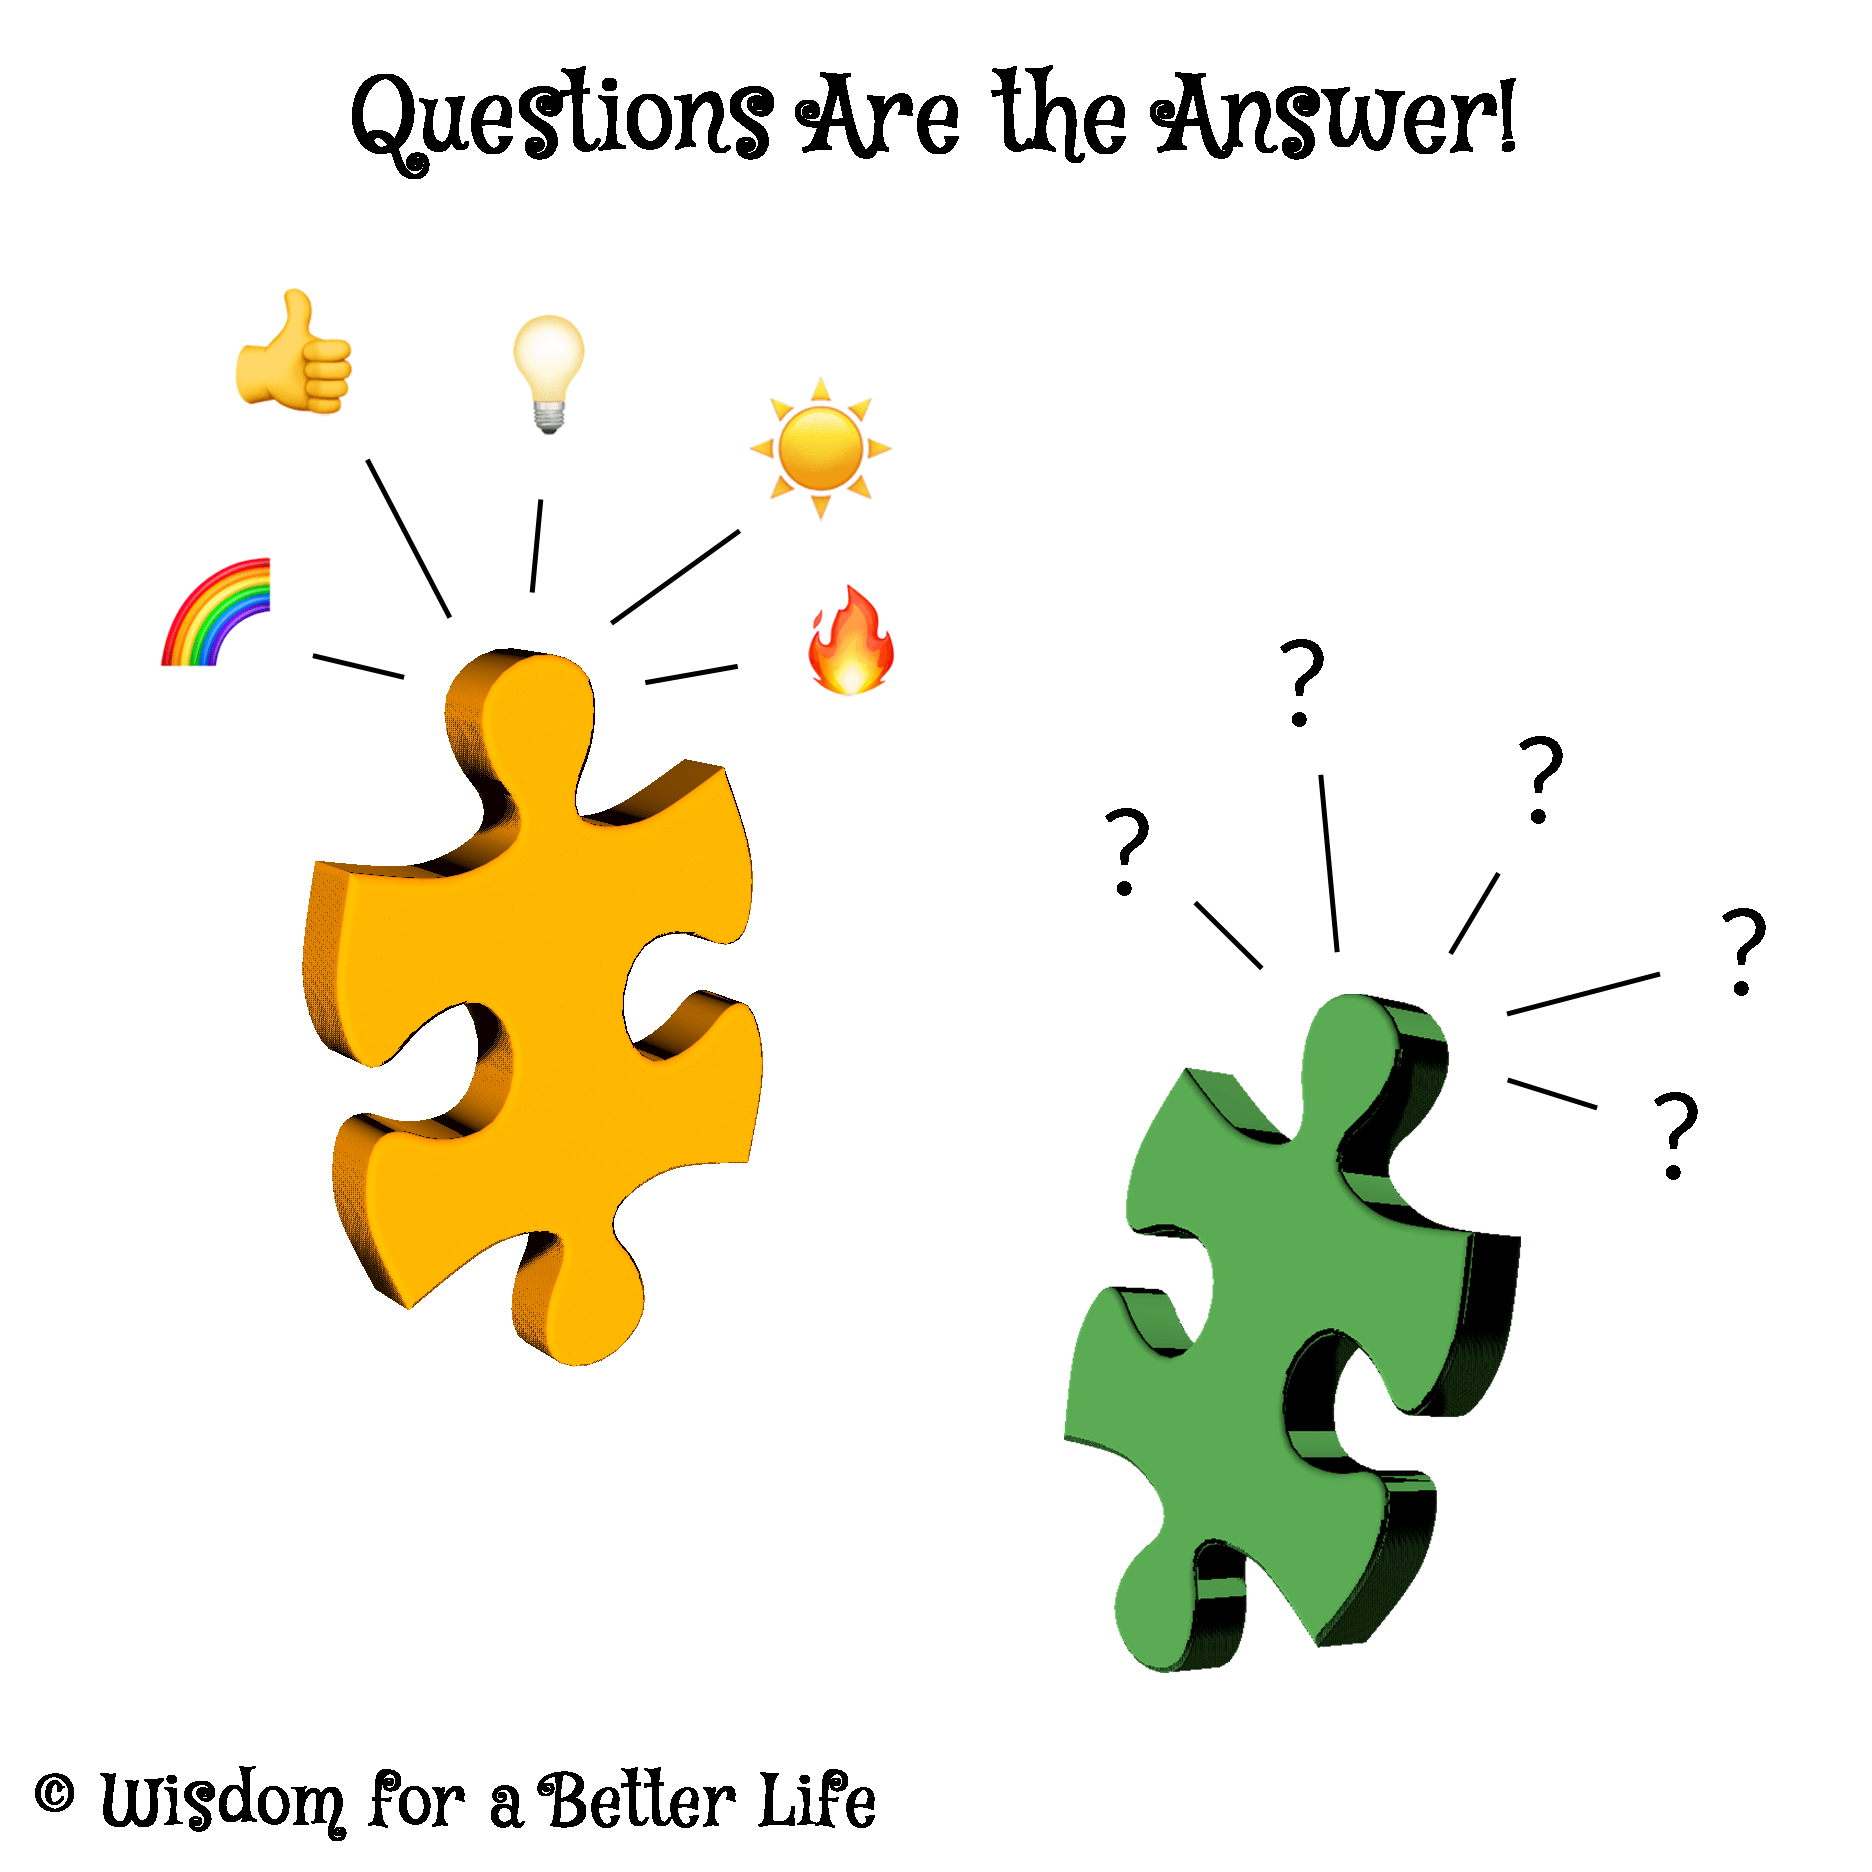 Wisdom for a Better Life - Questions Are the Answers!